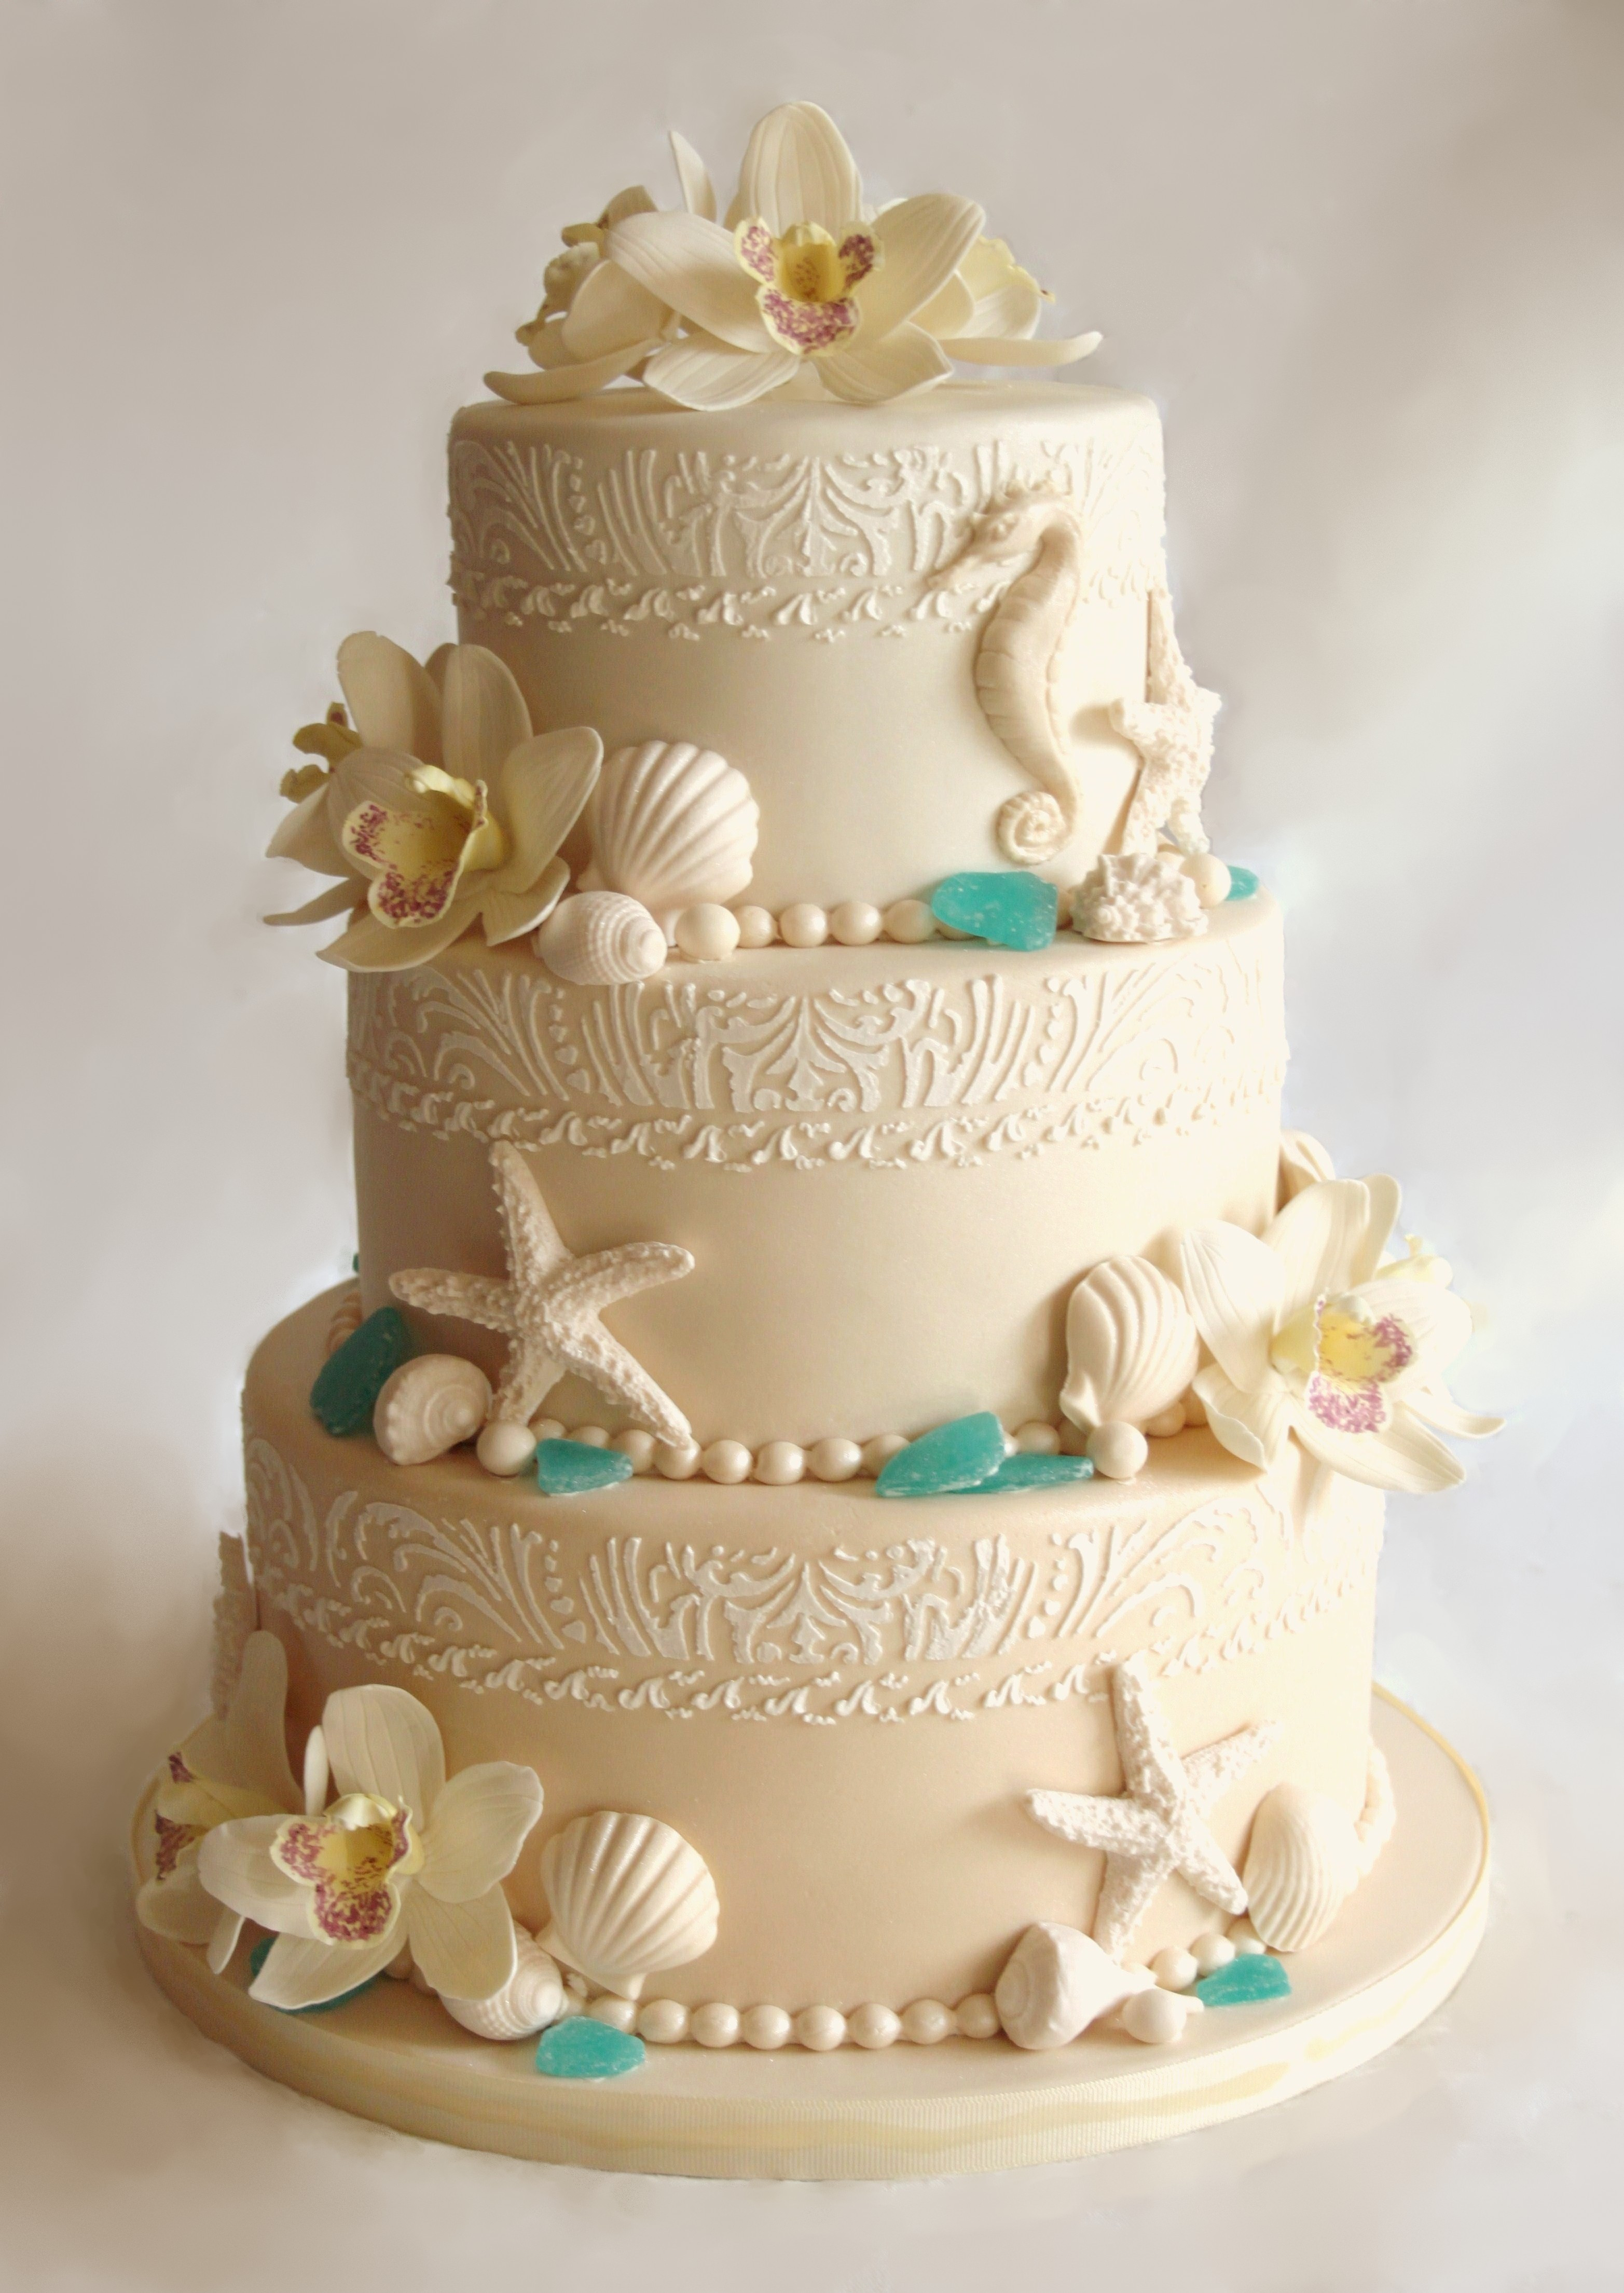 Themed Wedding Cakes  30 ULTIMATE WEDDING CAKES TO STEAL THE SHOW